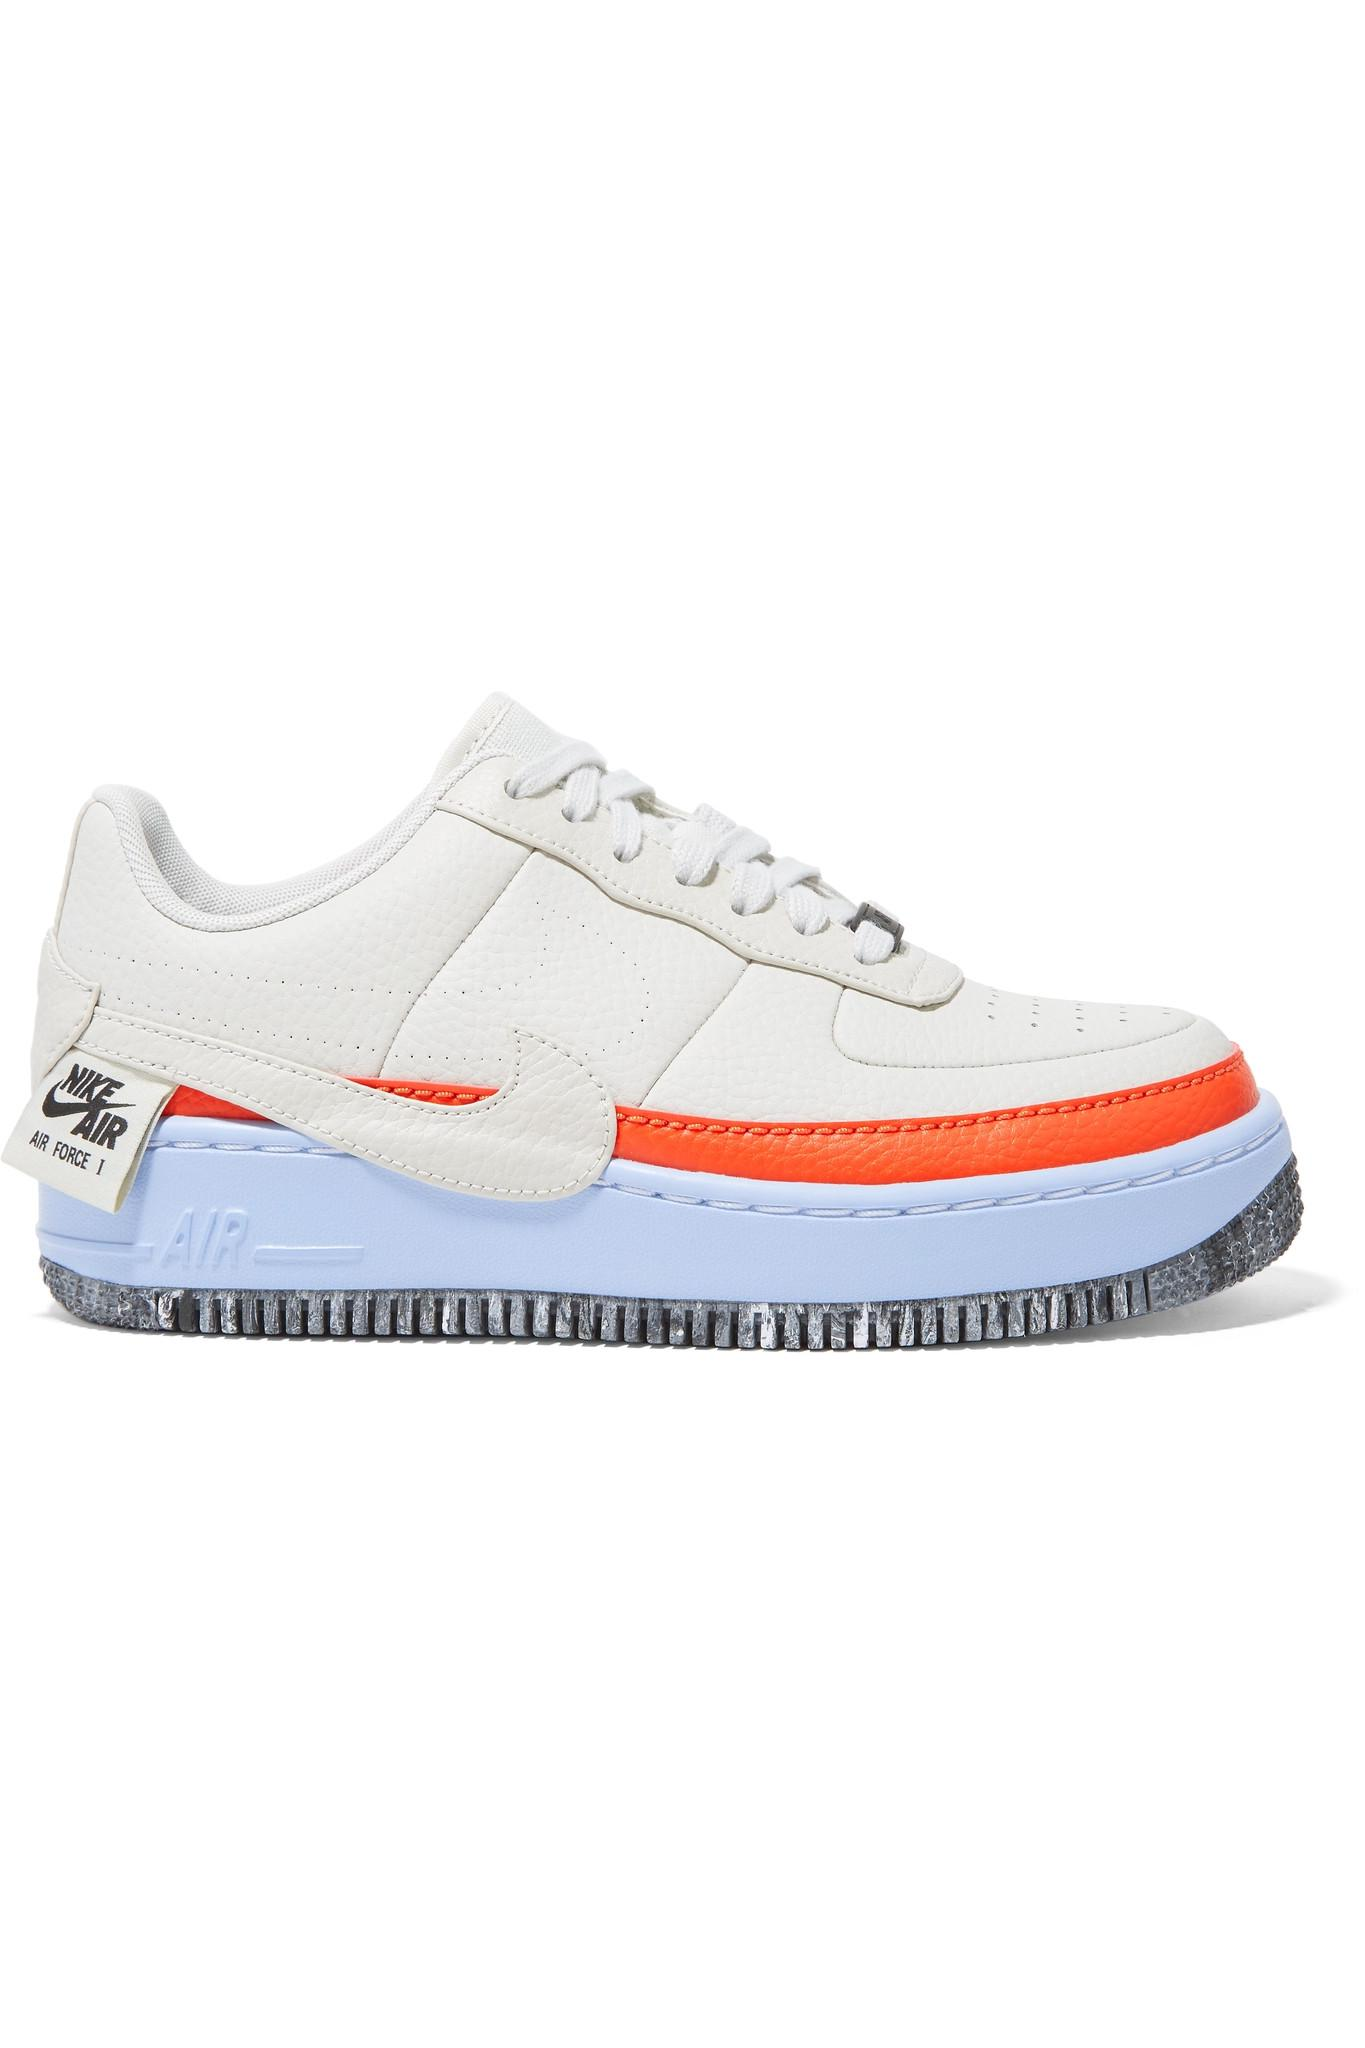 Lyst - Nike Air Force 1 Jester Xx Textured-leather Sneakers in White 6c0d9caa7